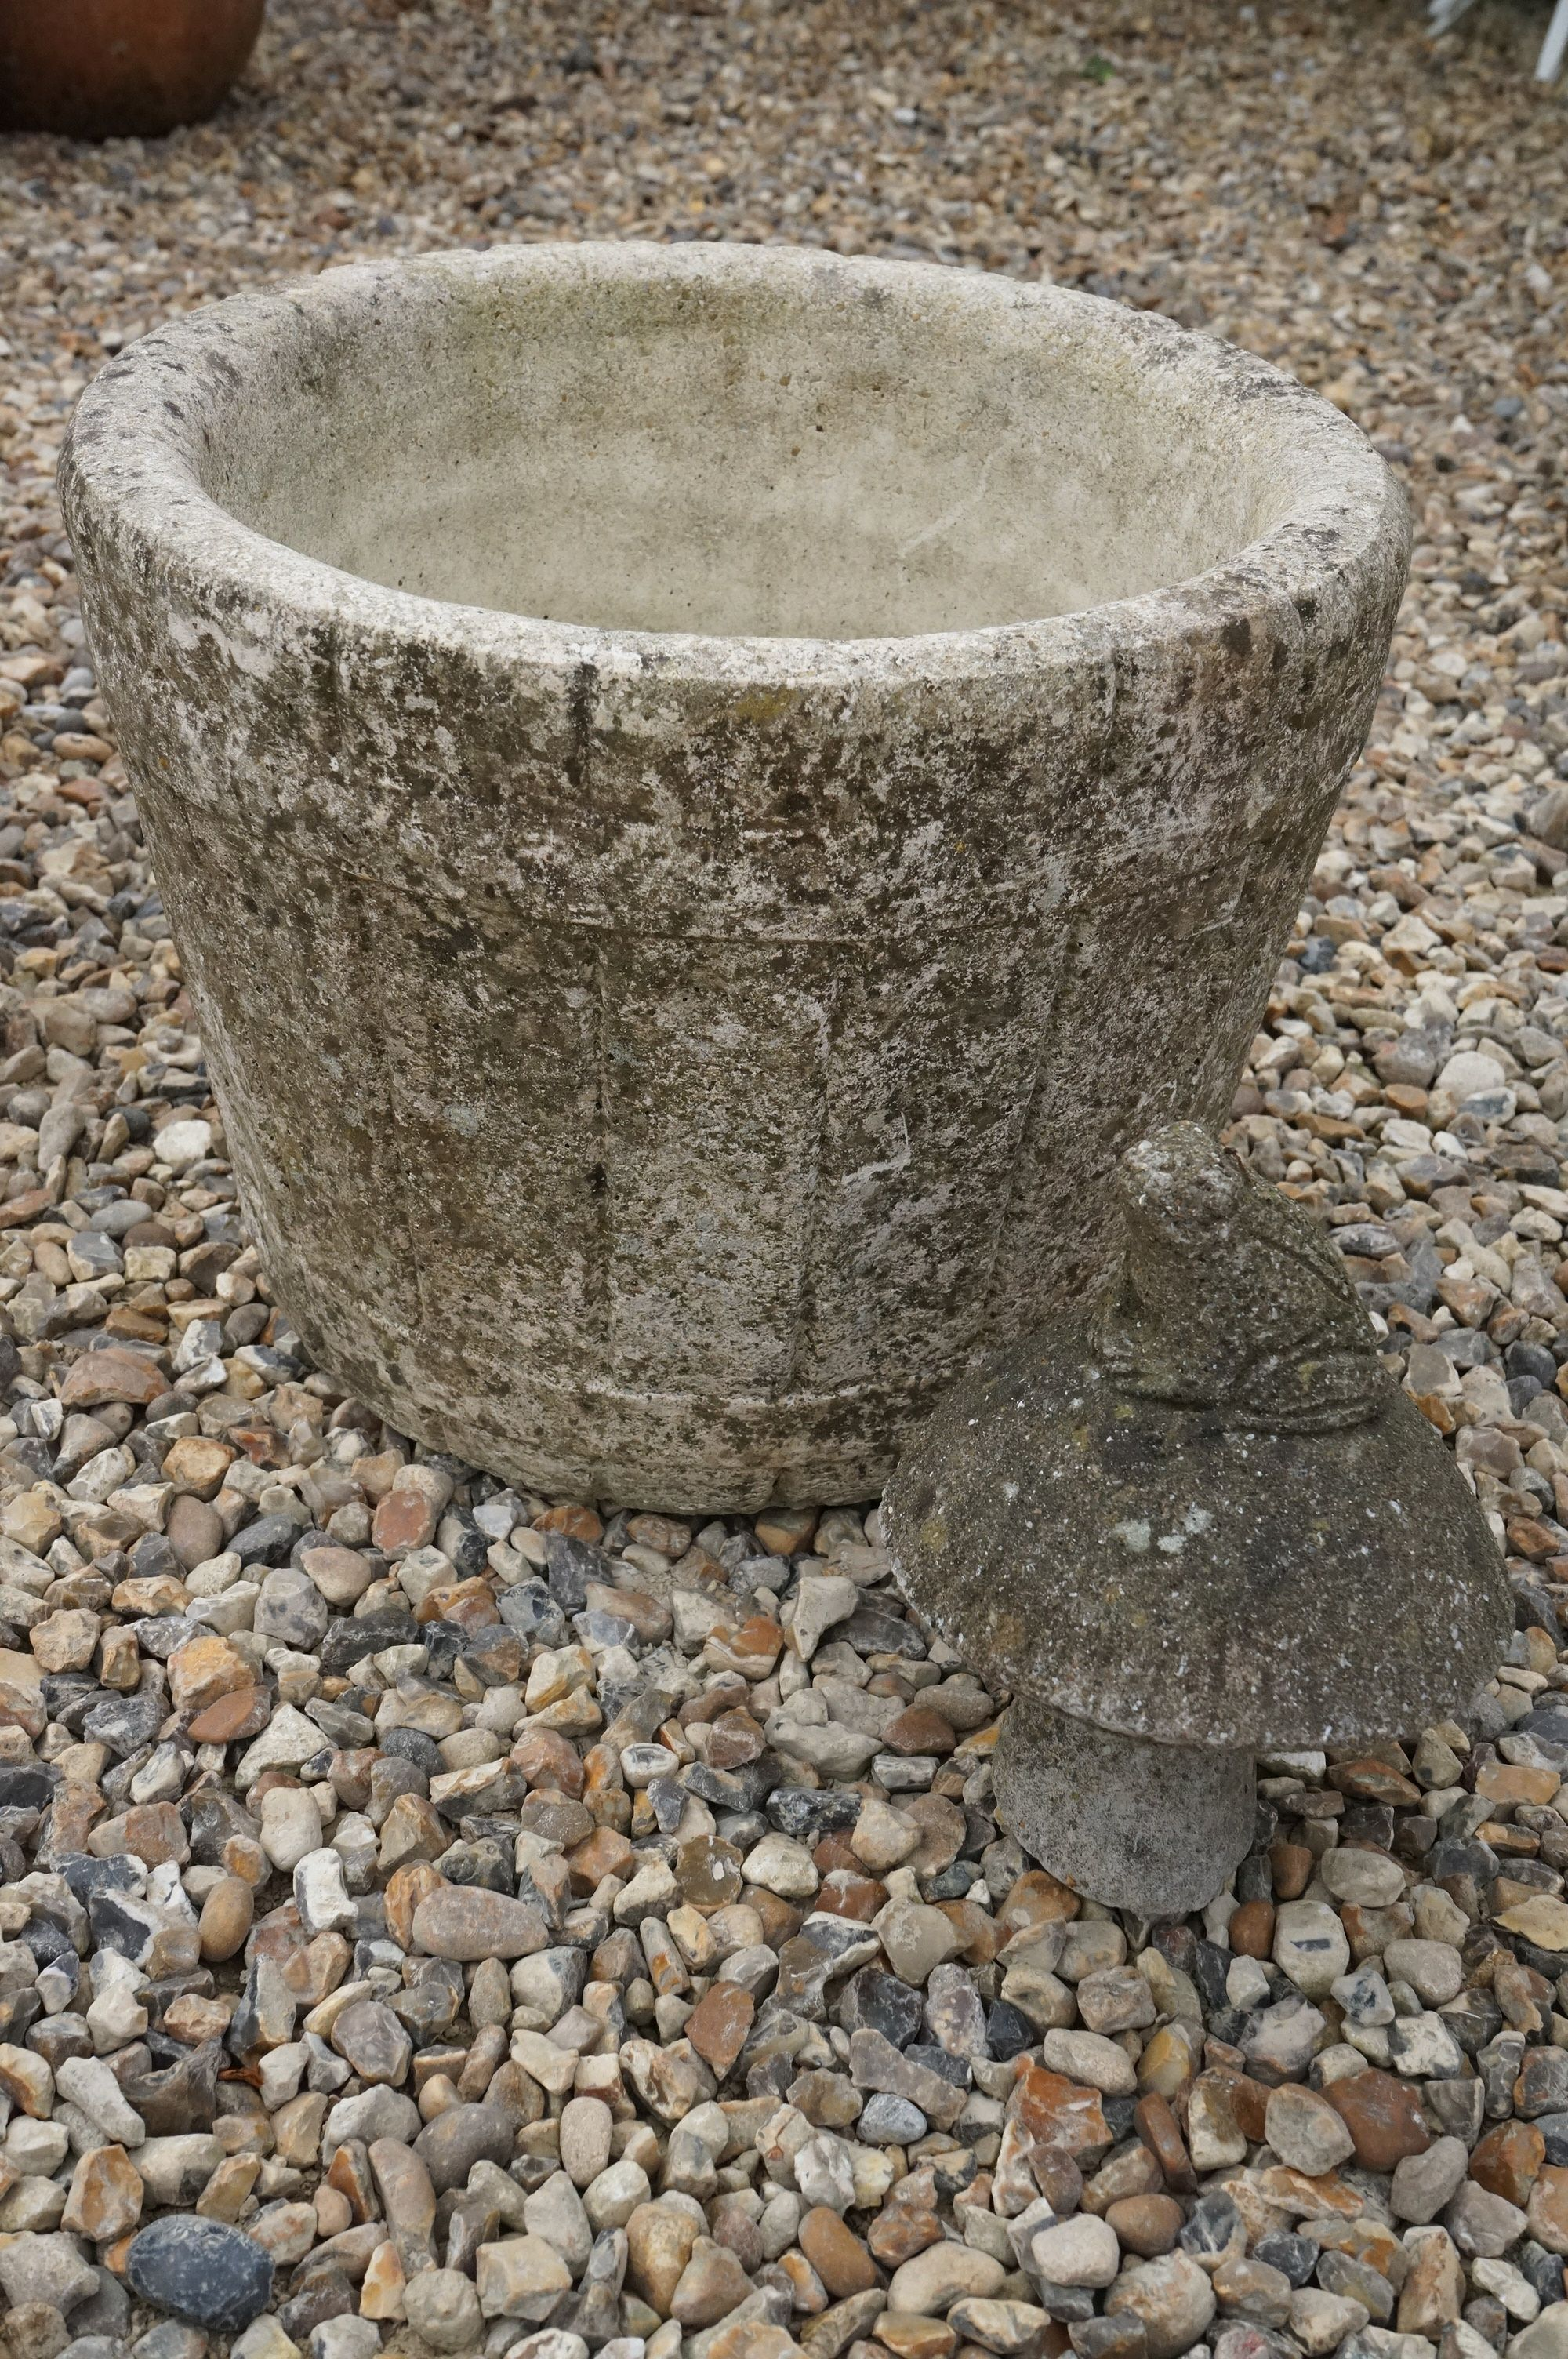 A reconstituted stone planter in the form of a barrel. - Image 3 of 3